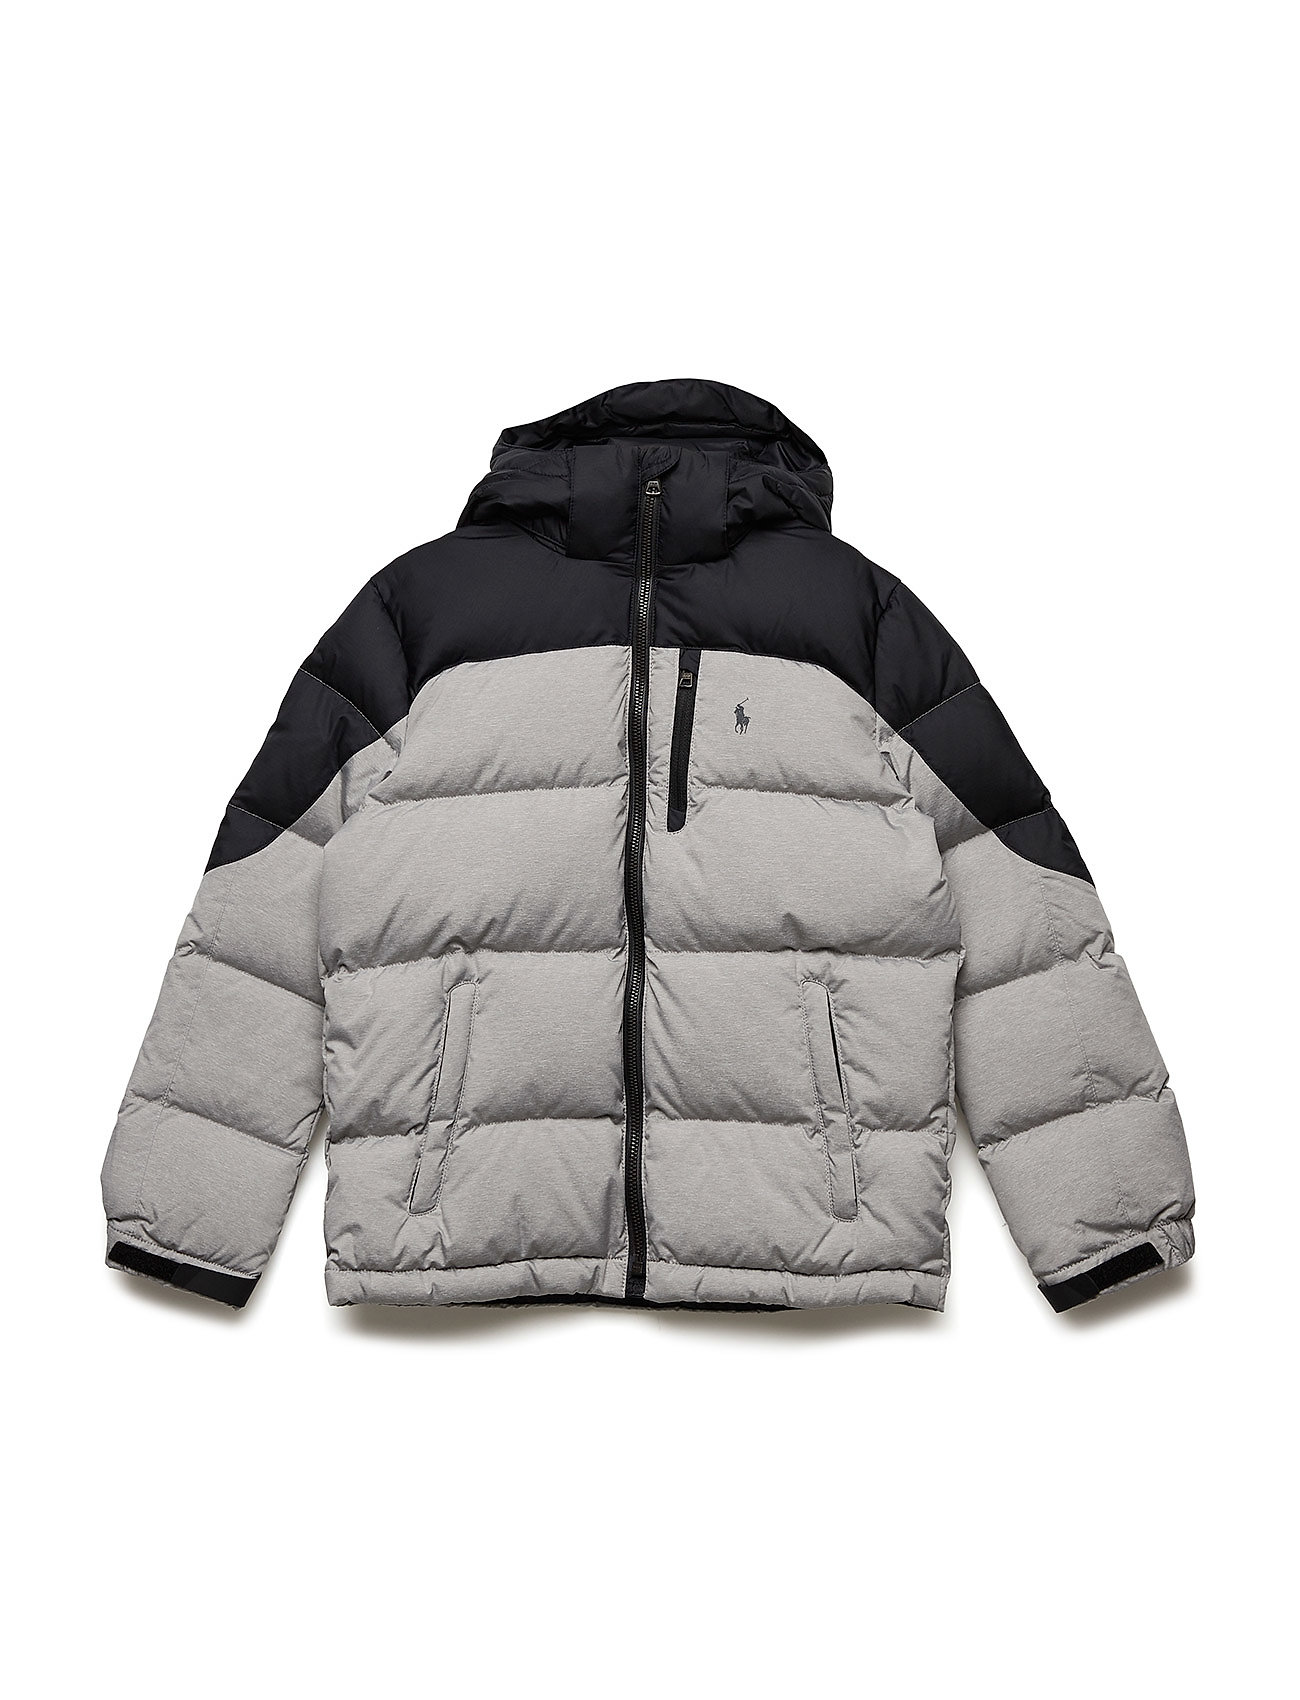 ca997a766 Quilted Ripstop Down Jacket (Lt Grey Heather) (£101.40) - Ralph ...